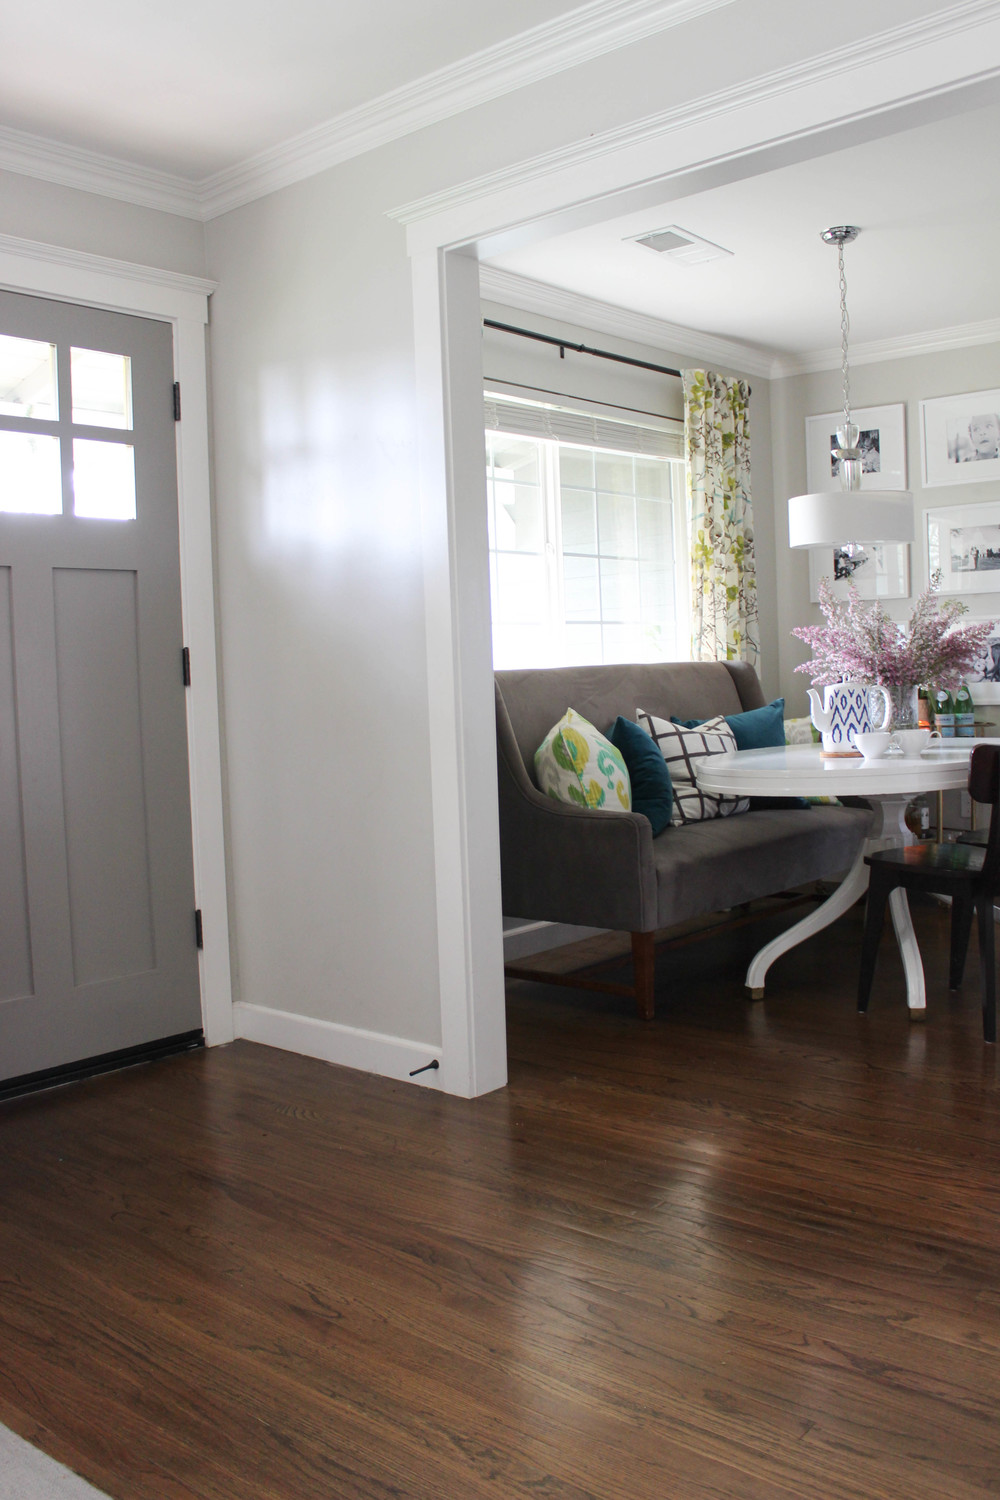 Hereu0027s A Look At Our Dining Room A Four Months After Moving Back Into Our  Home. I Came Across The Perfect Vintage Blonde Dining Room Table And Gave  It A ...